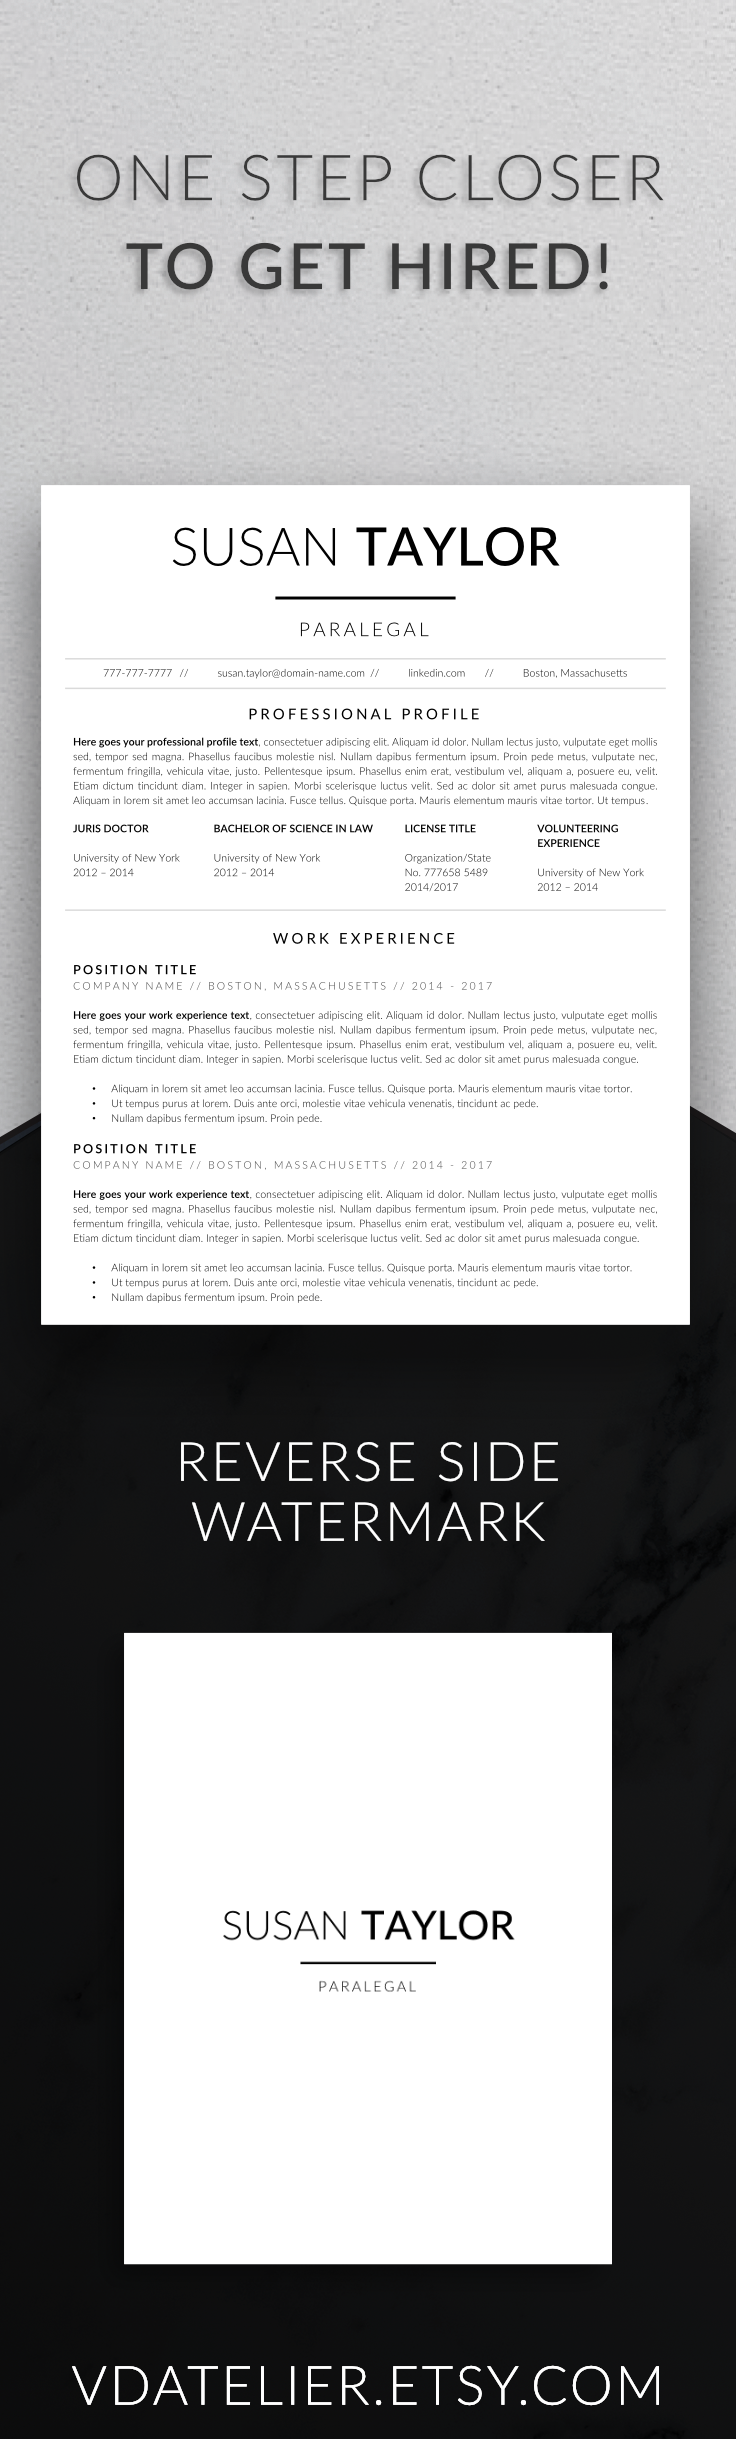 Law resume template for modern professionals Suitable